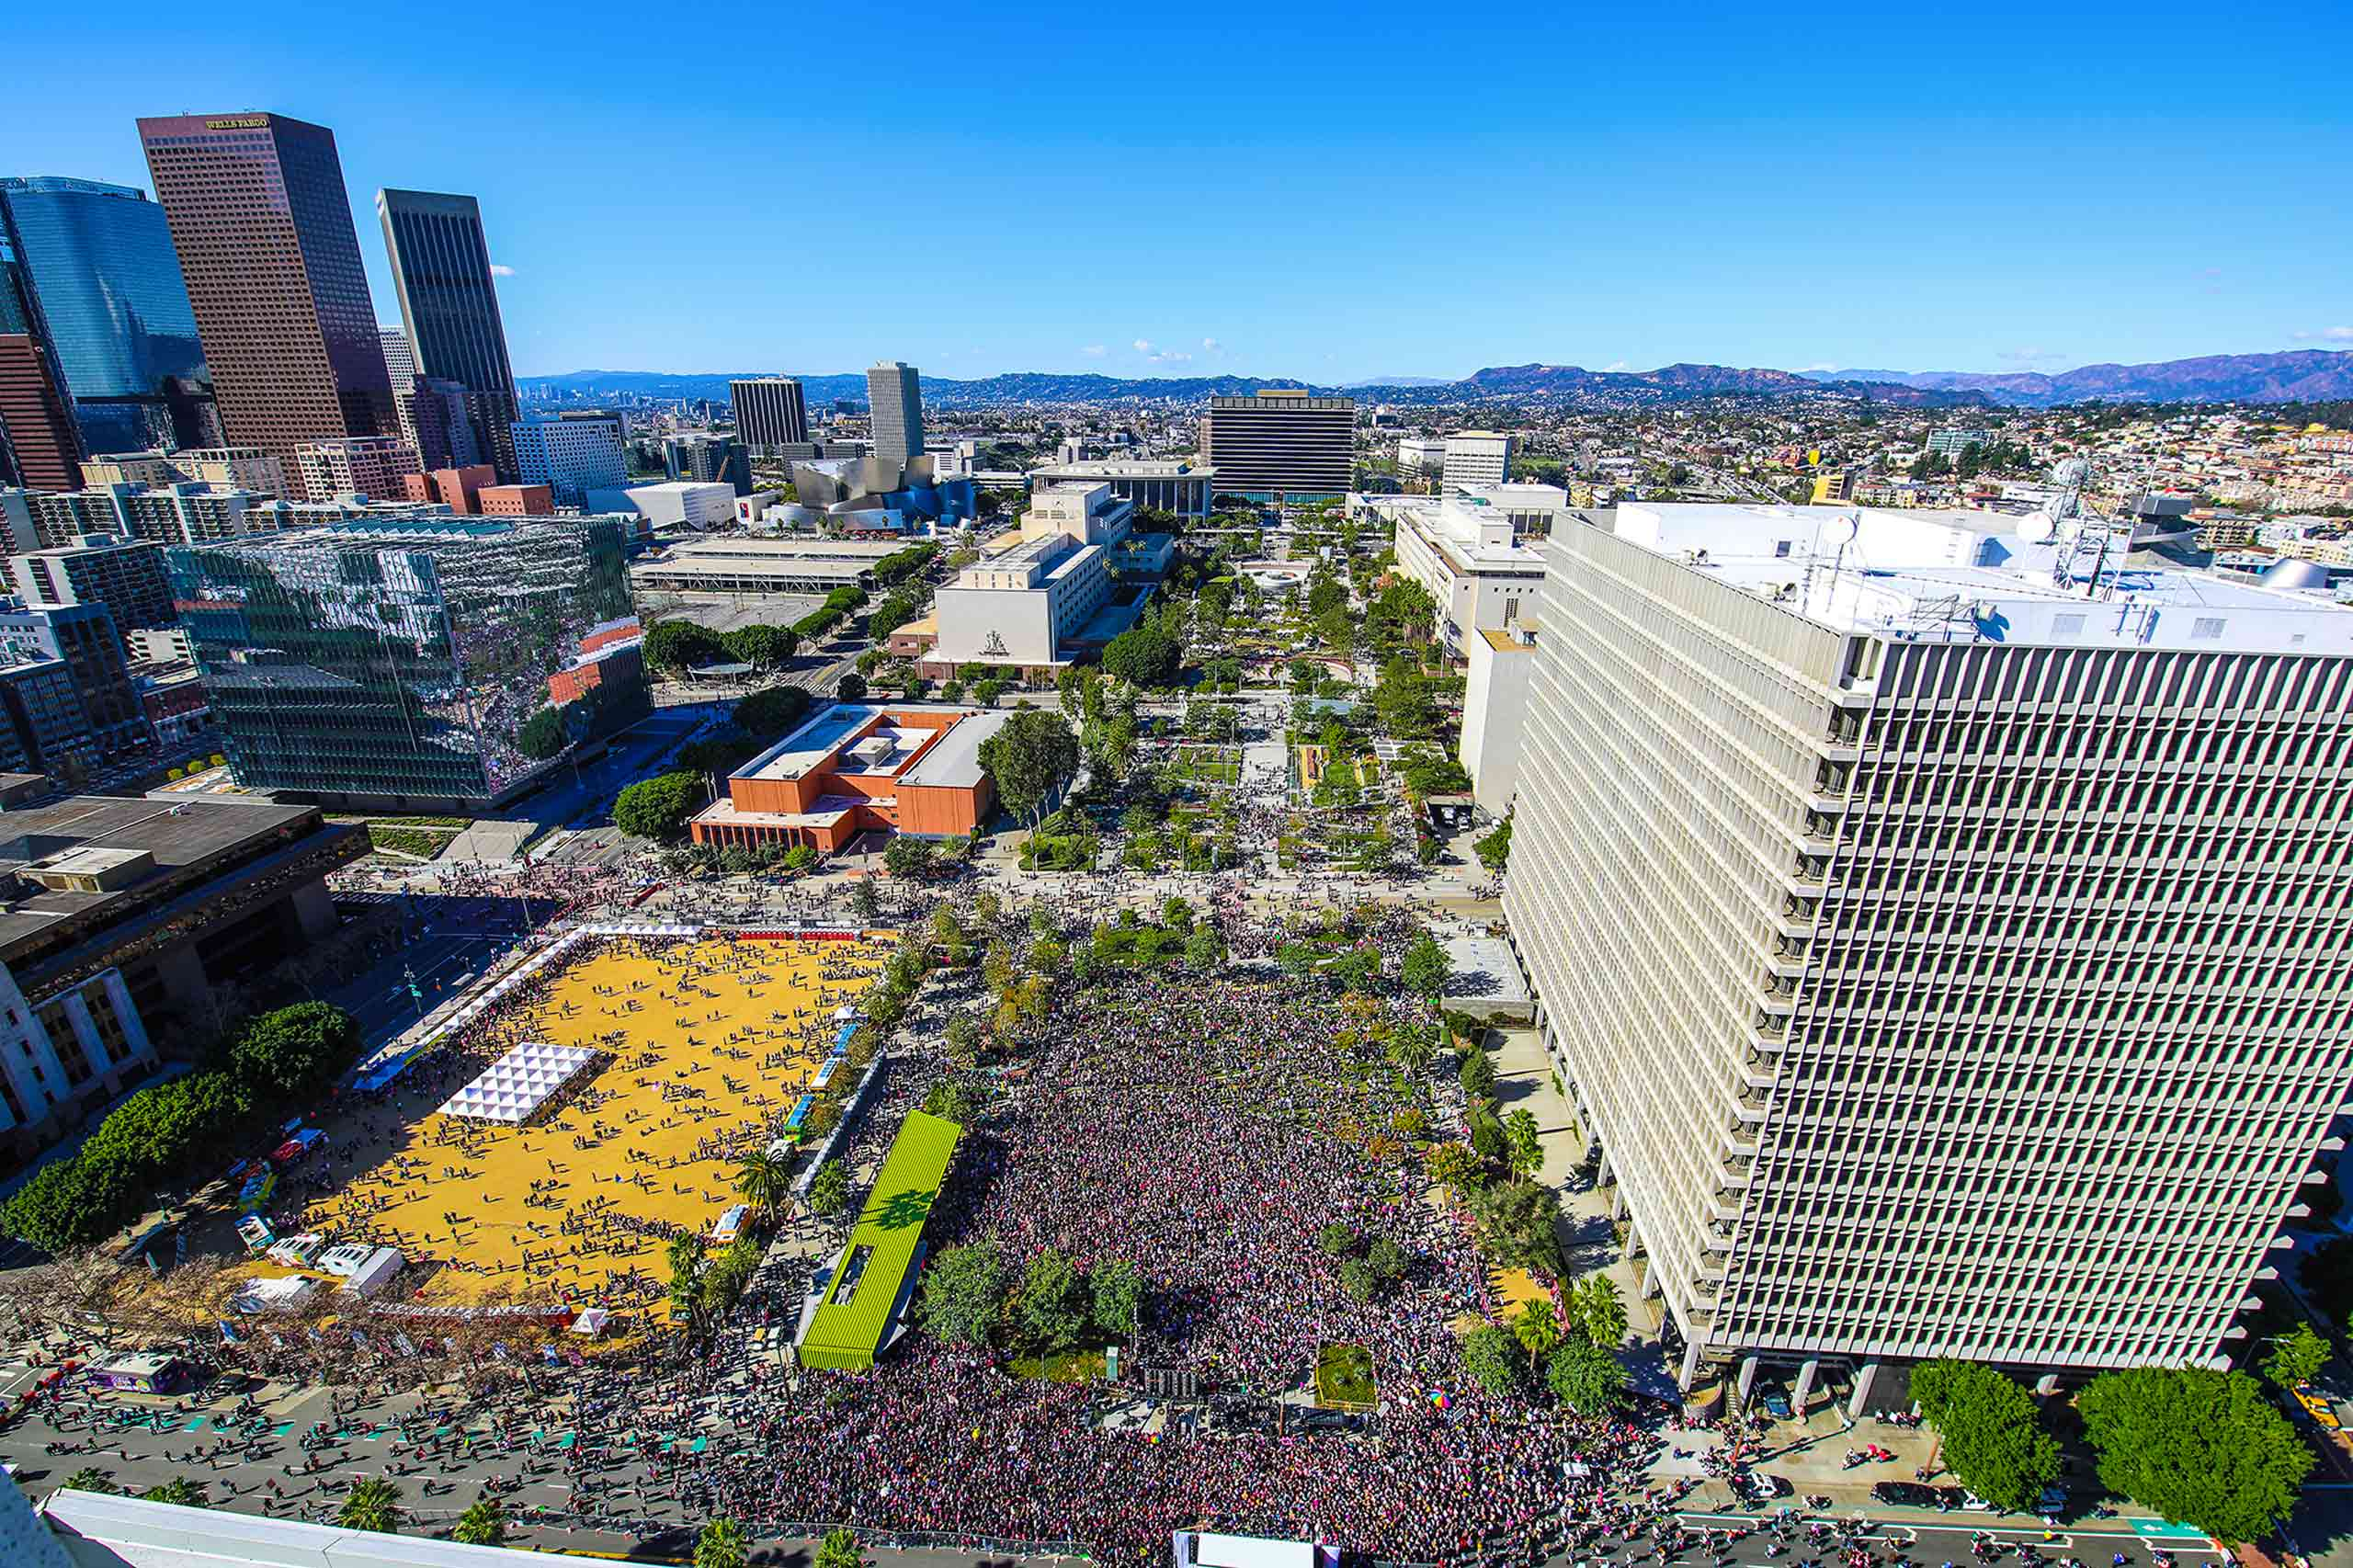 Aerial view of women's march in Grand Park